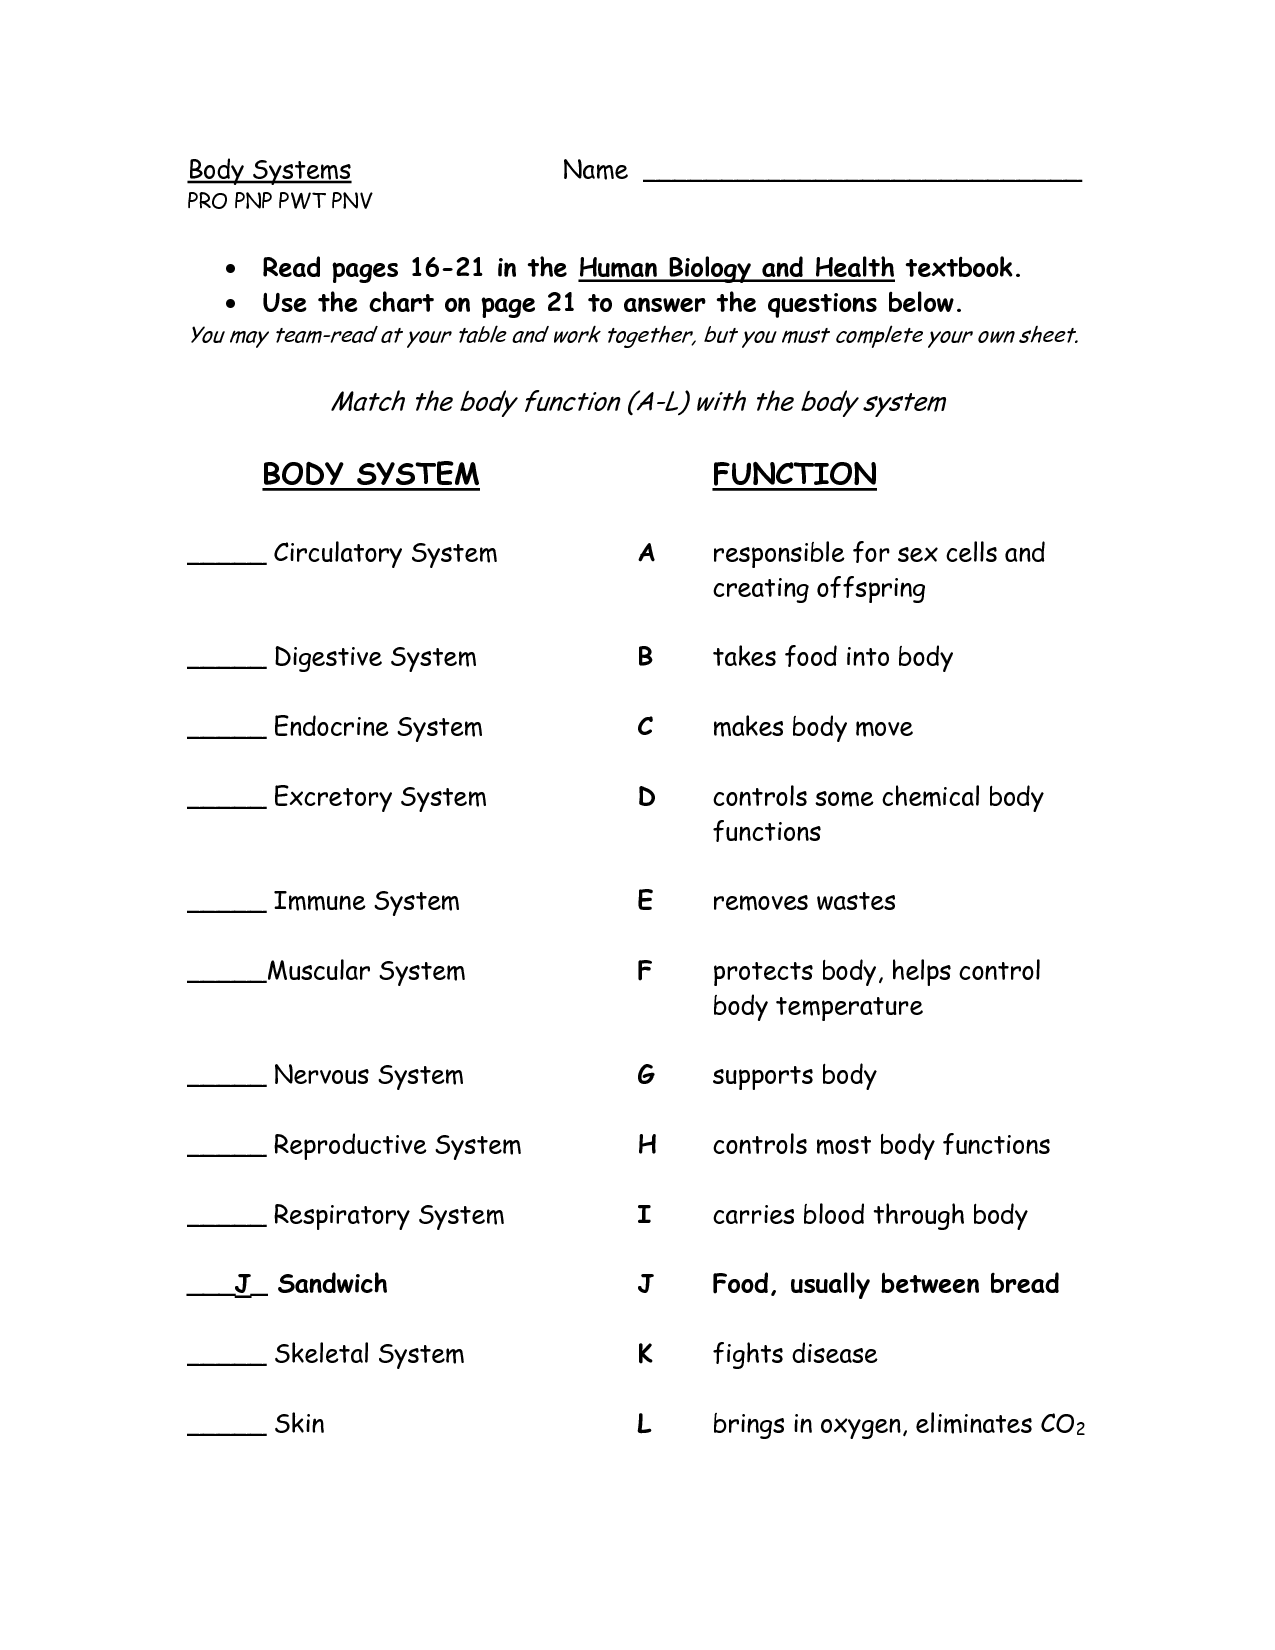 Bodysystemsandfunctionsworksheets – The Endocrine System Worksheet